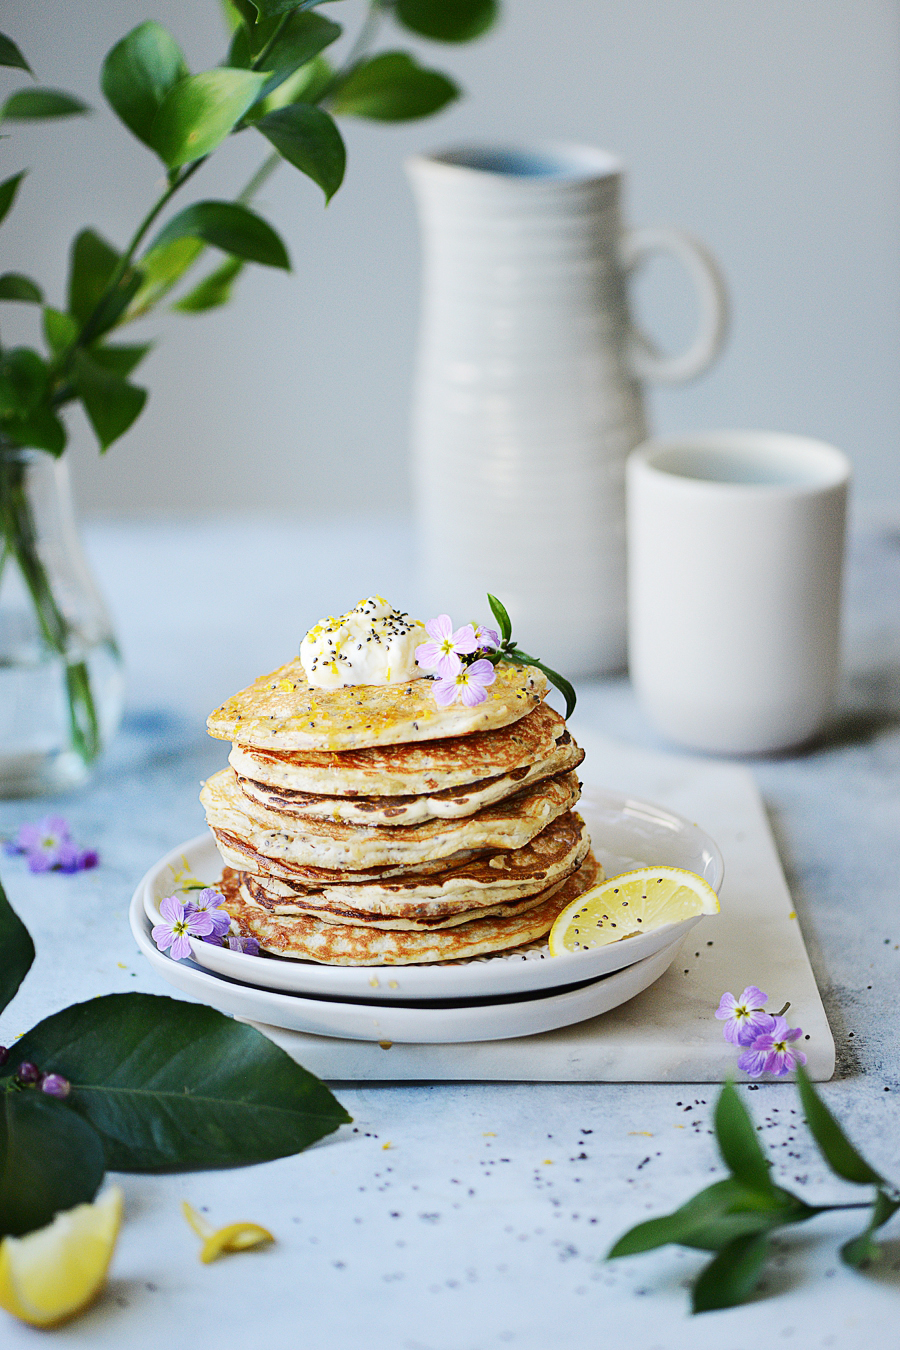 A stack of Lemon Pancakes on white plate with dripping syrup